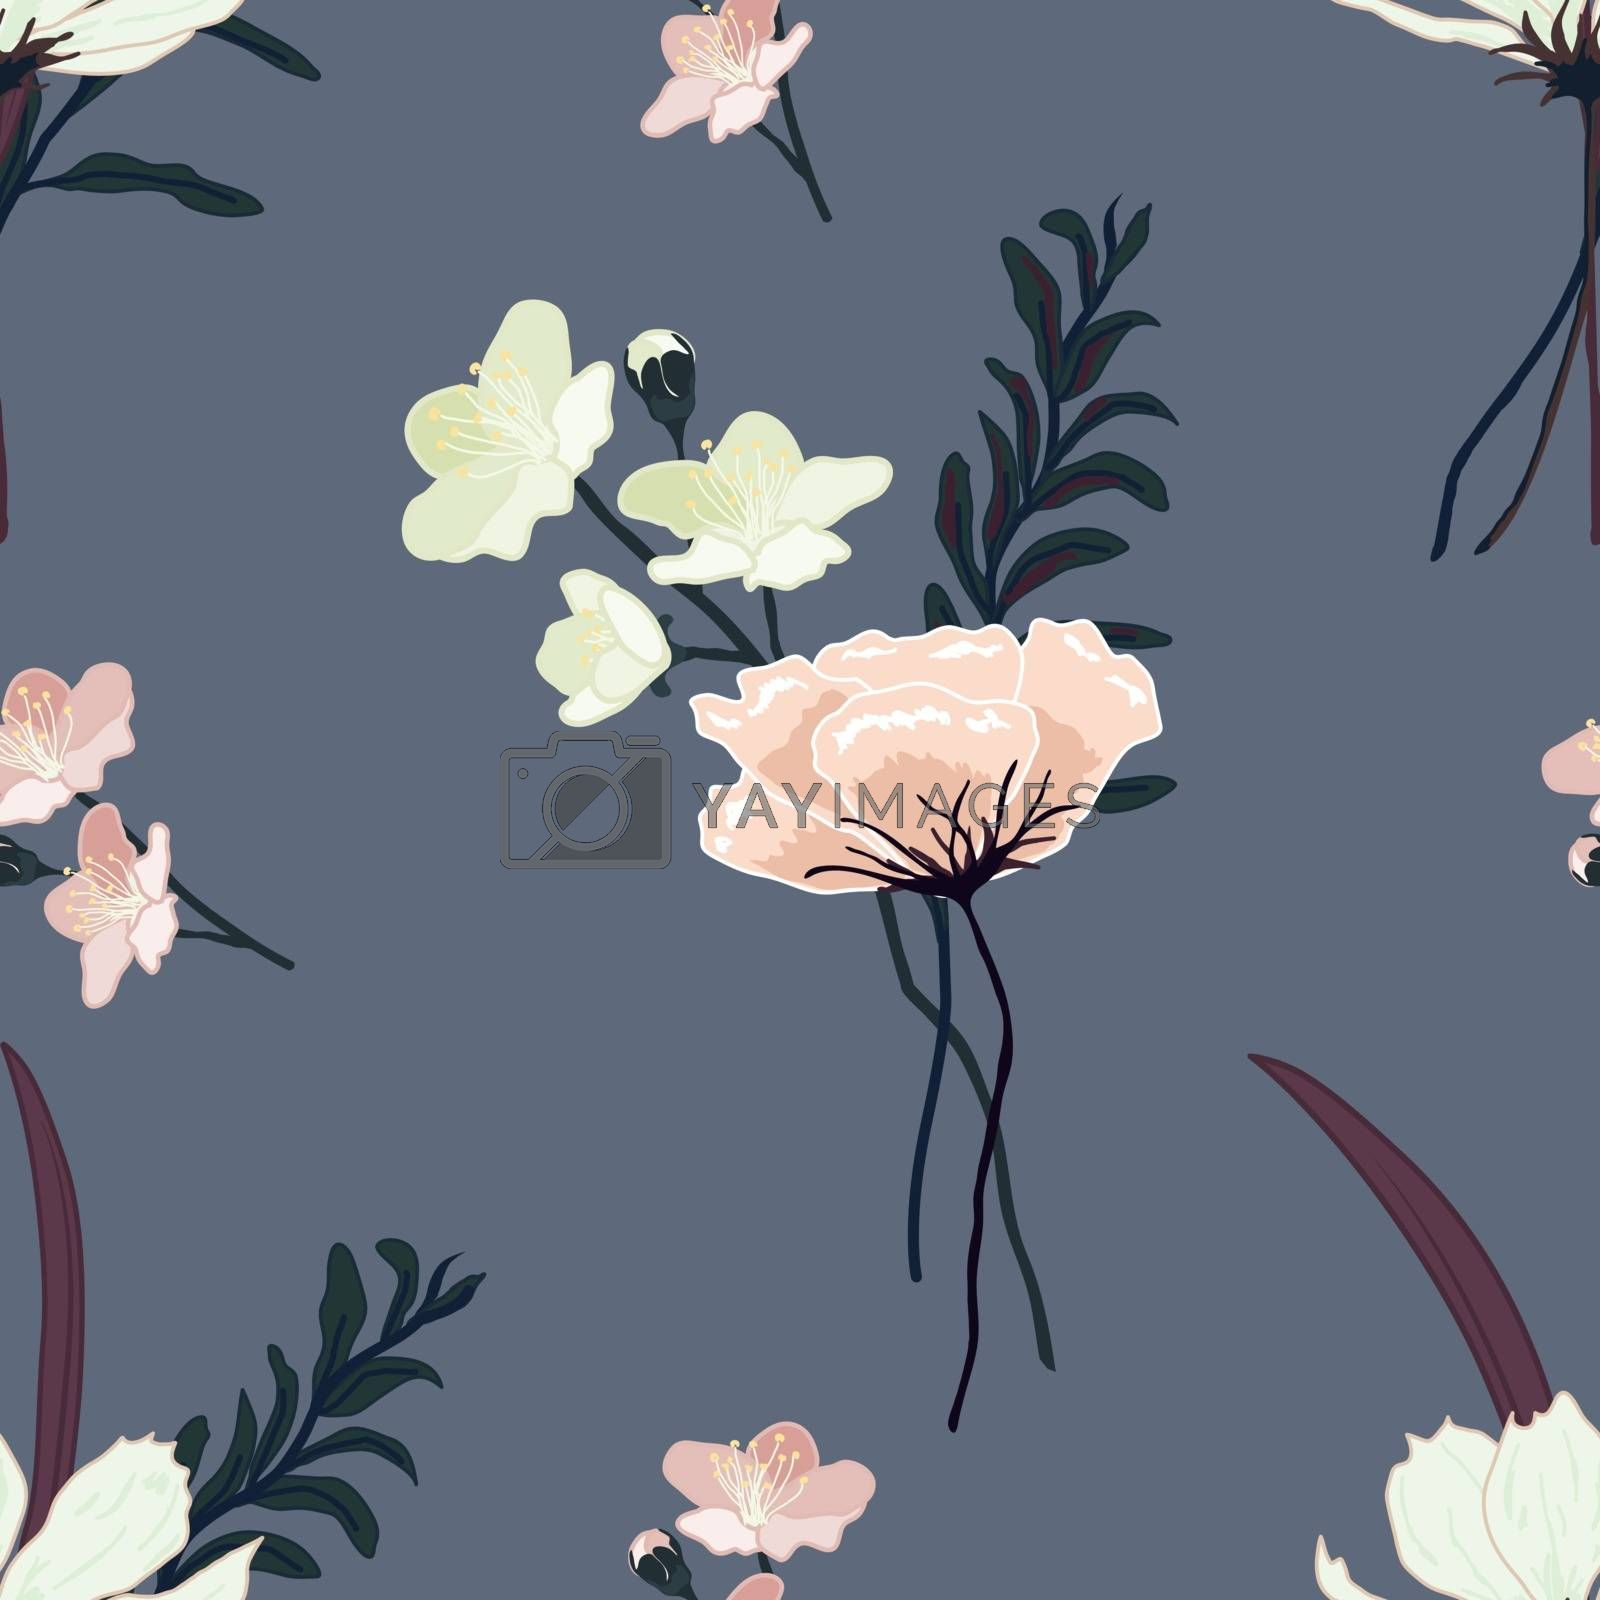 Decorative seamless floral pattern with hand drawn vintage flowers. Wallpaper with lily, camellia rose, cherry blossom, grass and leaves bouquet on blue grey background, vector eps 10 illustration